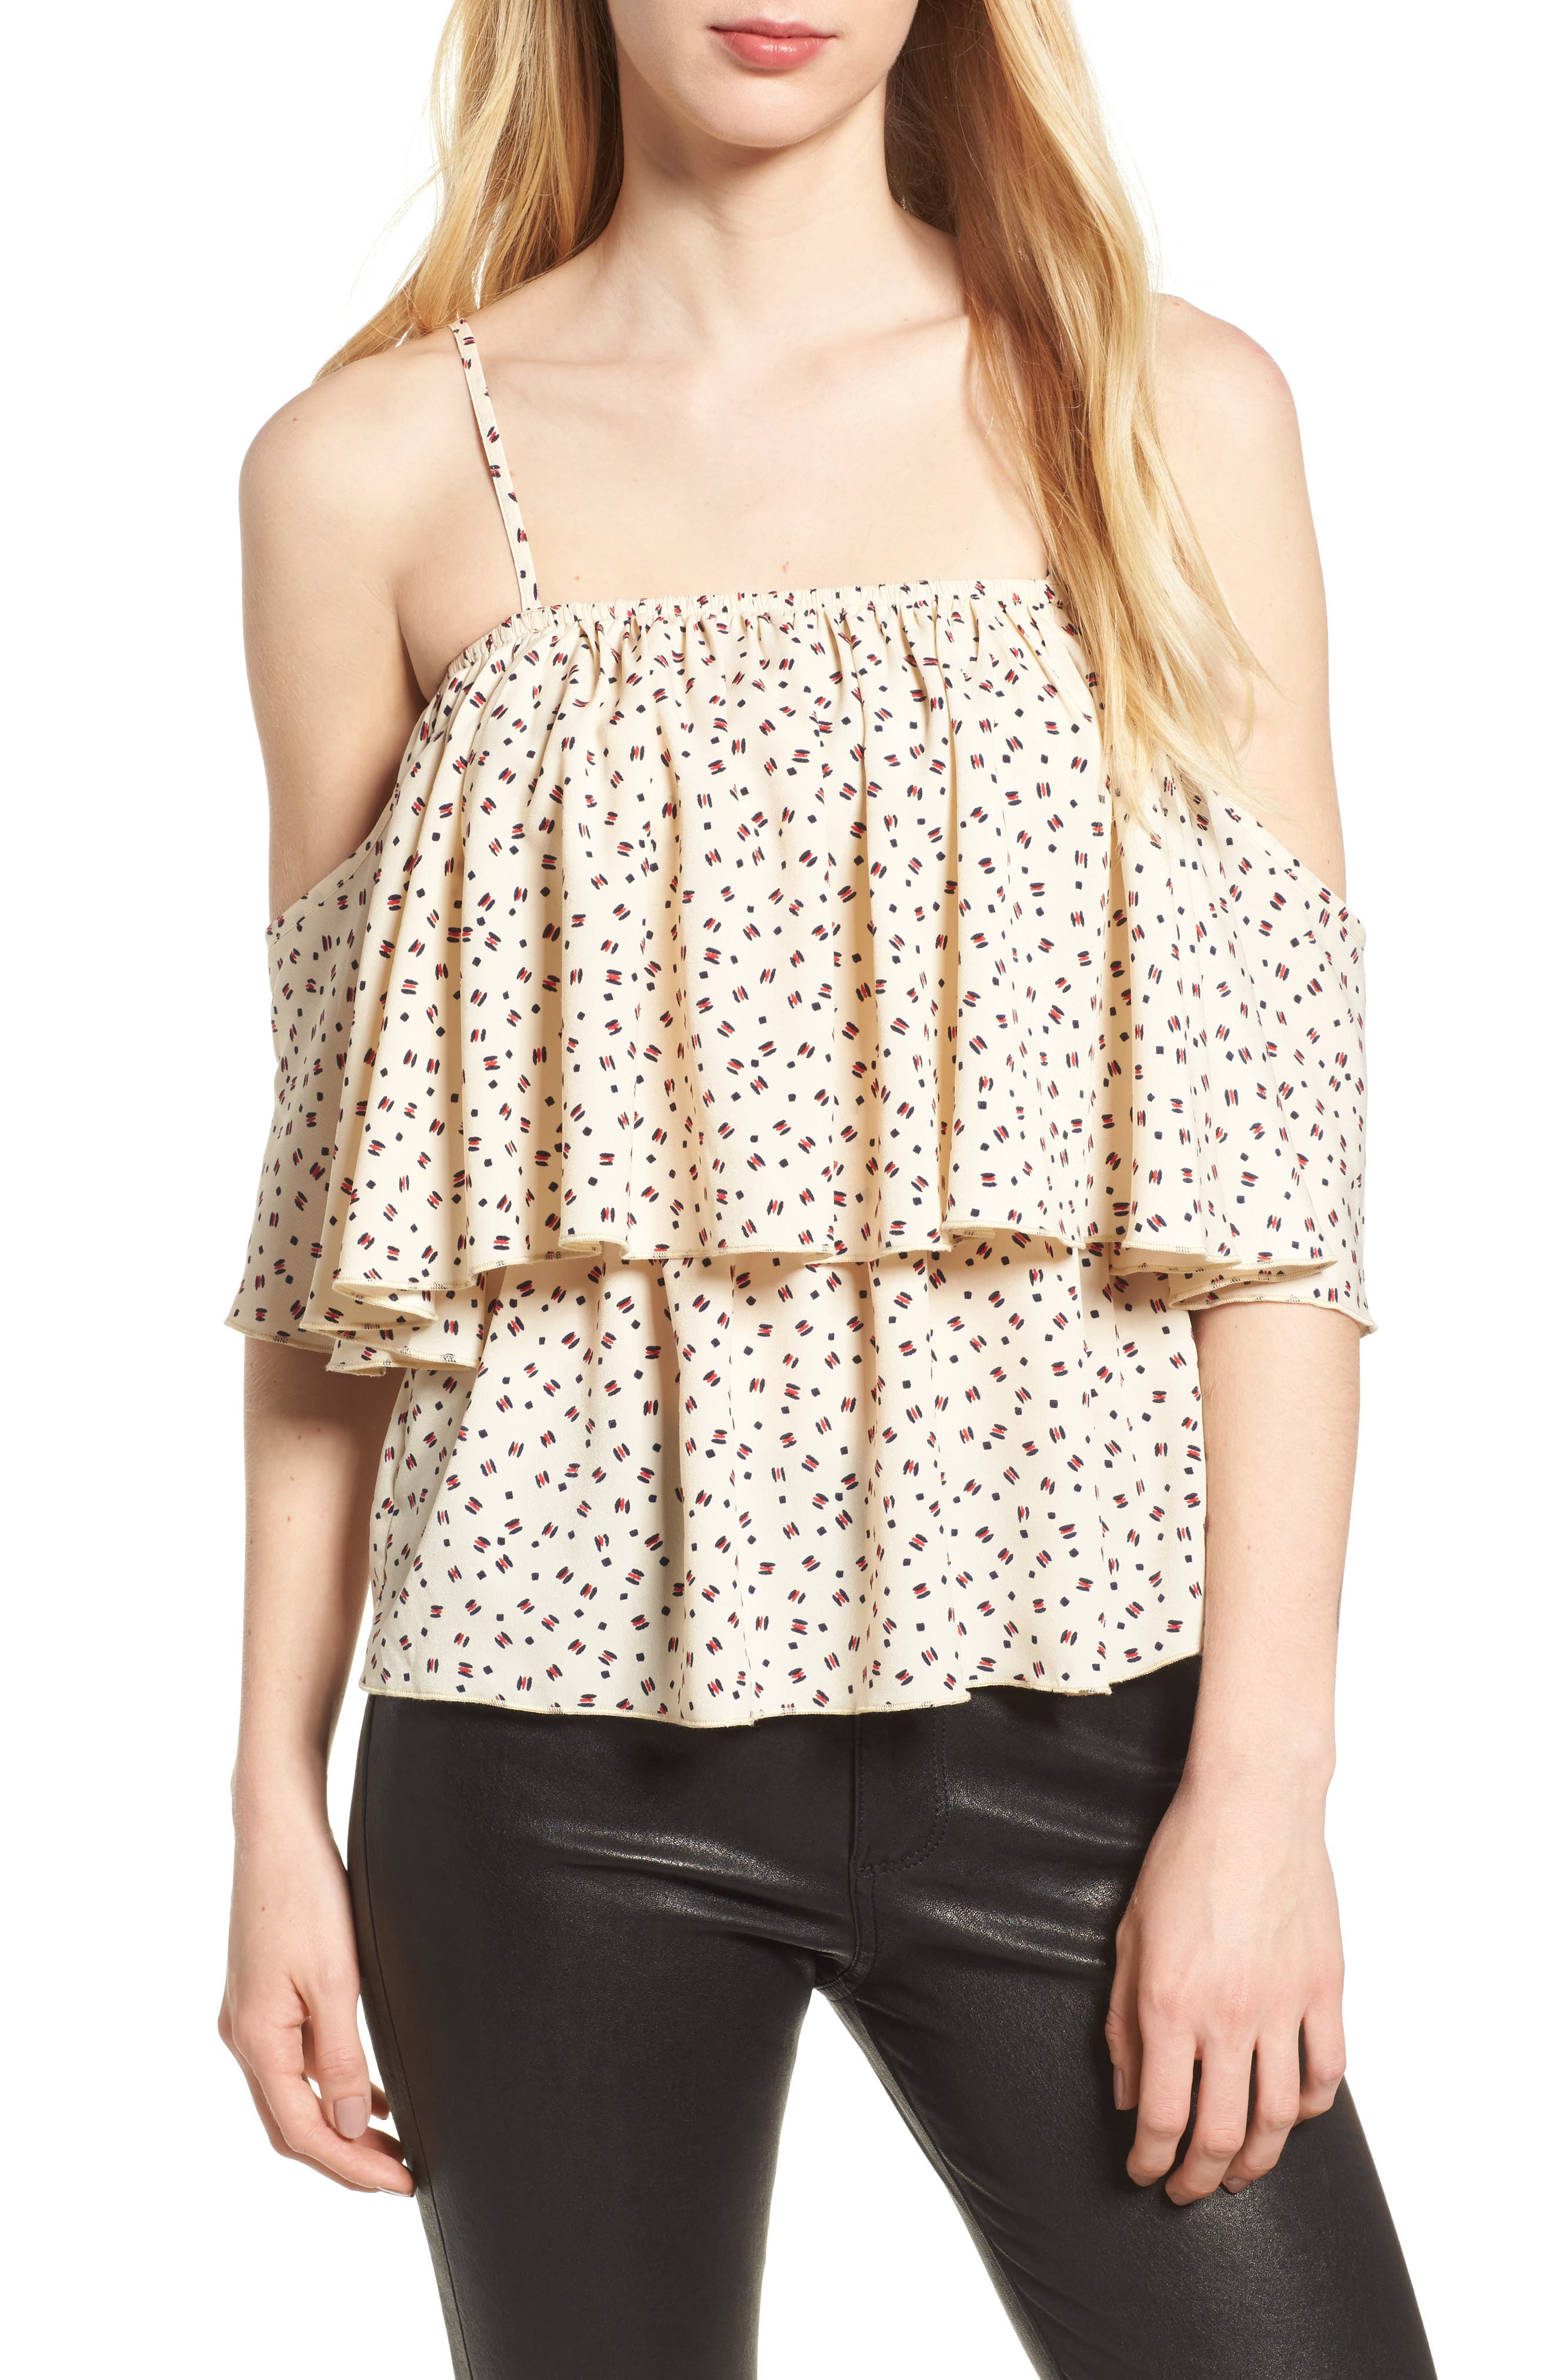 Bishop + Young Lilly Tiered Top,                         Main,                         color, White Print